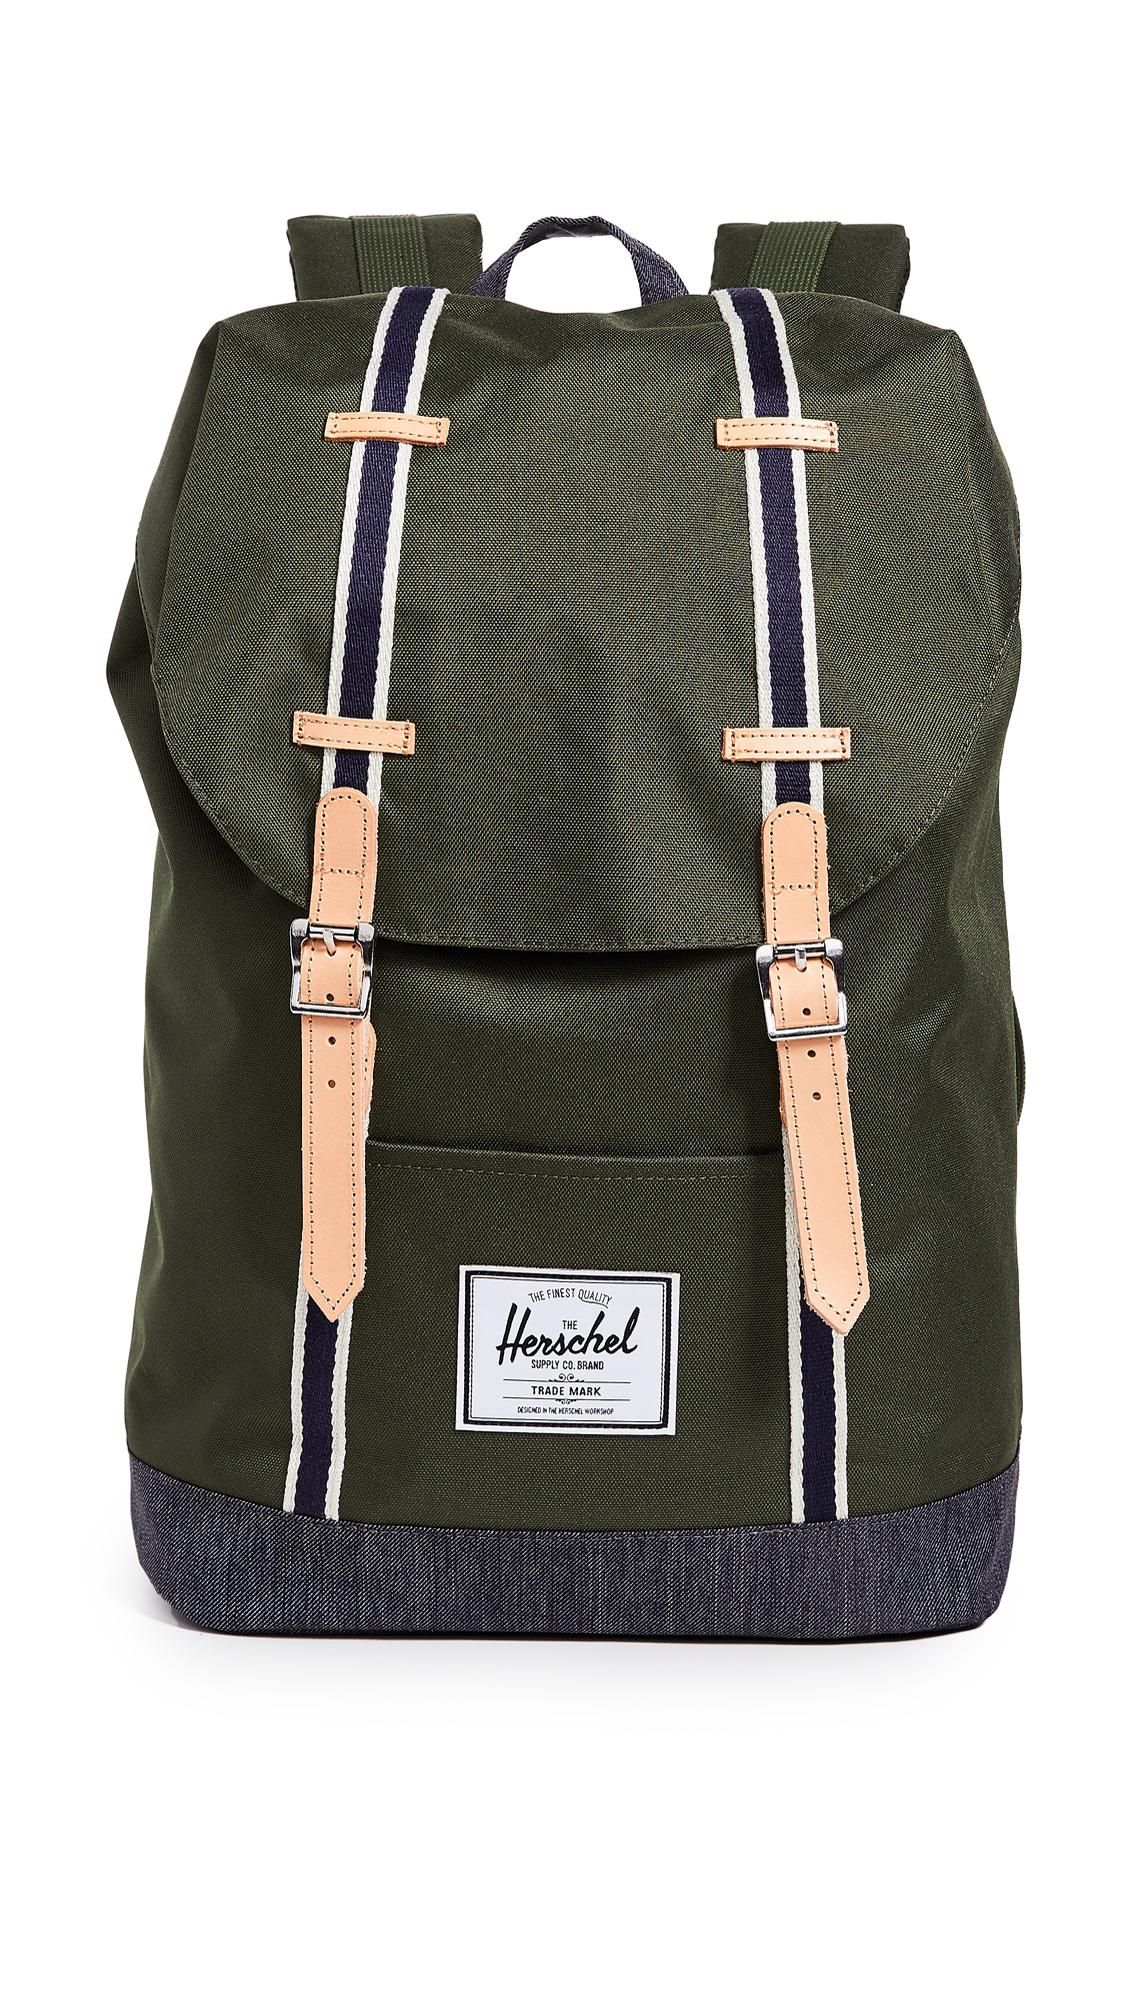 d42aa6e3d62d Herschel Supply Co. Retreat Backpack In Forest Night/Dark Denim ...